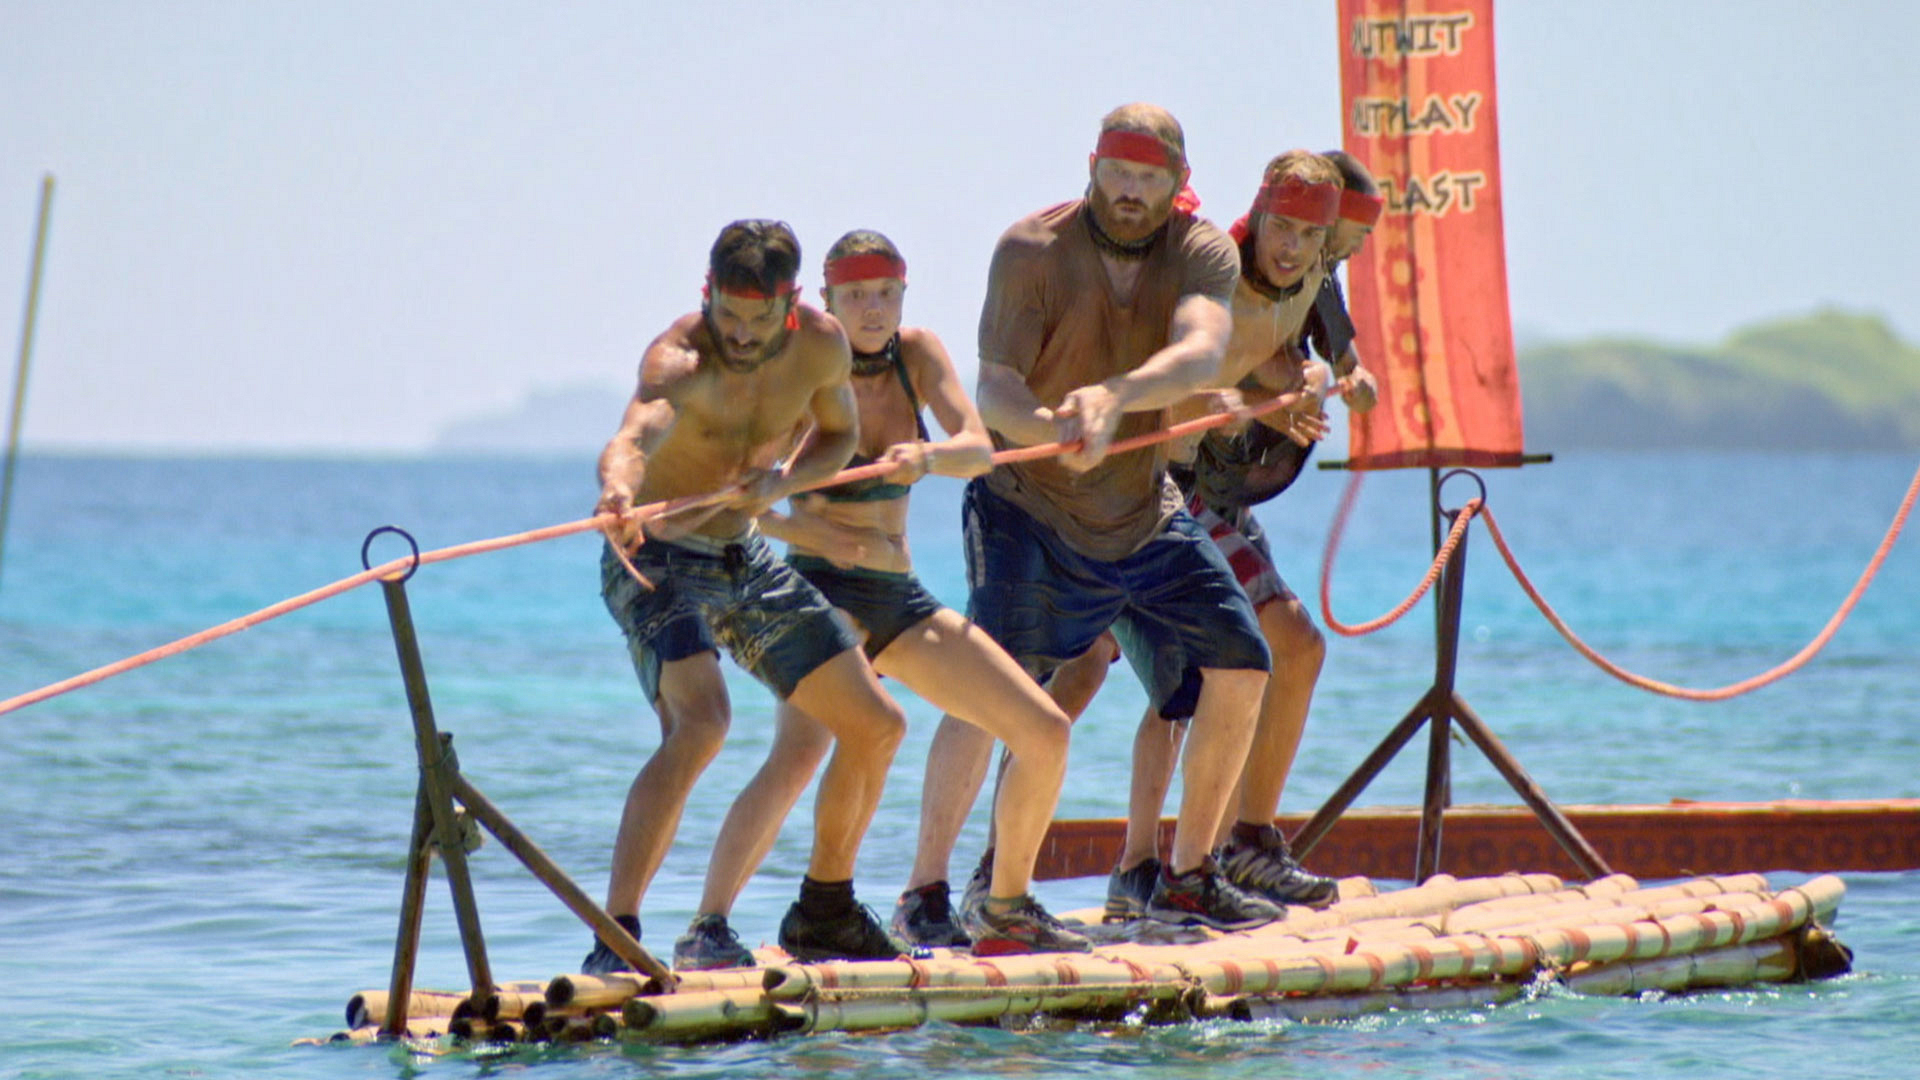 Ken leads the way for his team as they tug the rope.